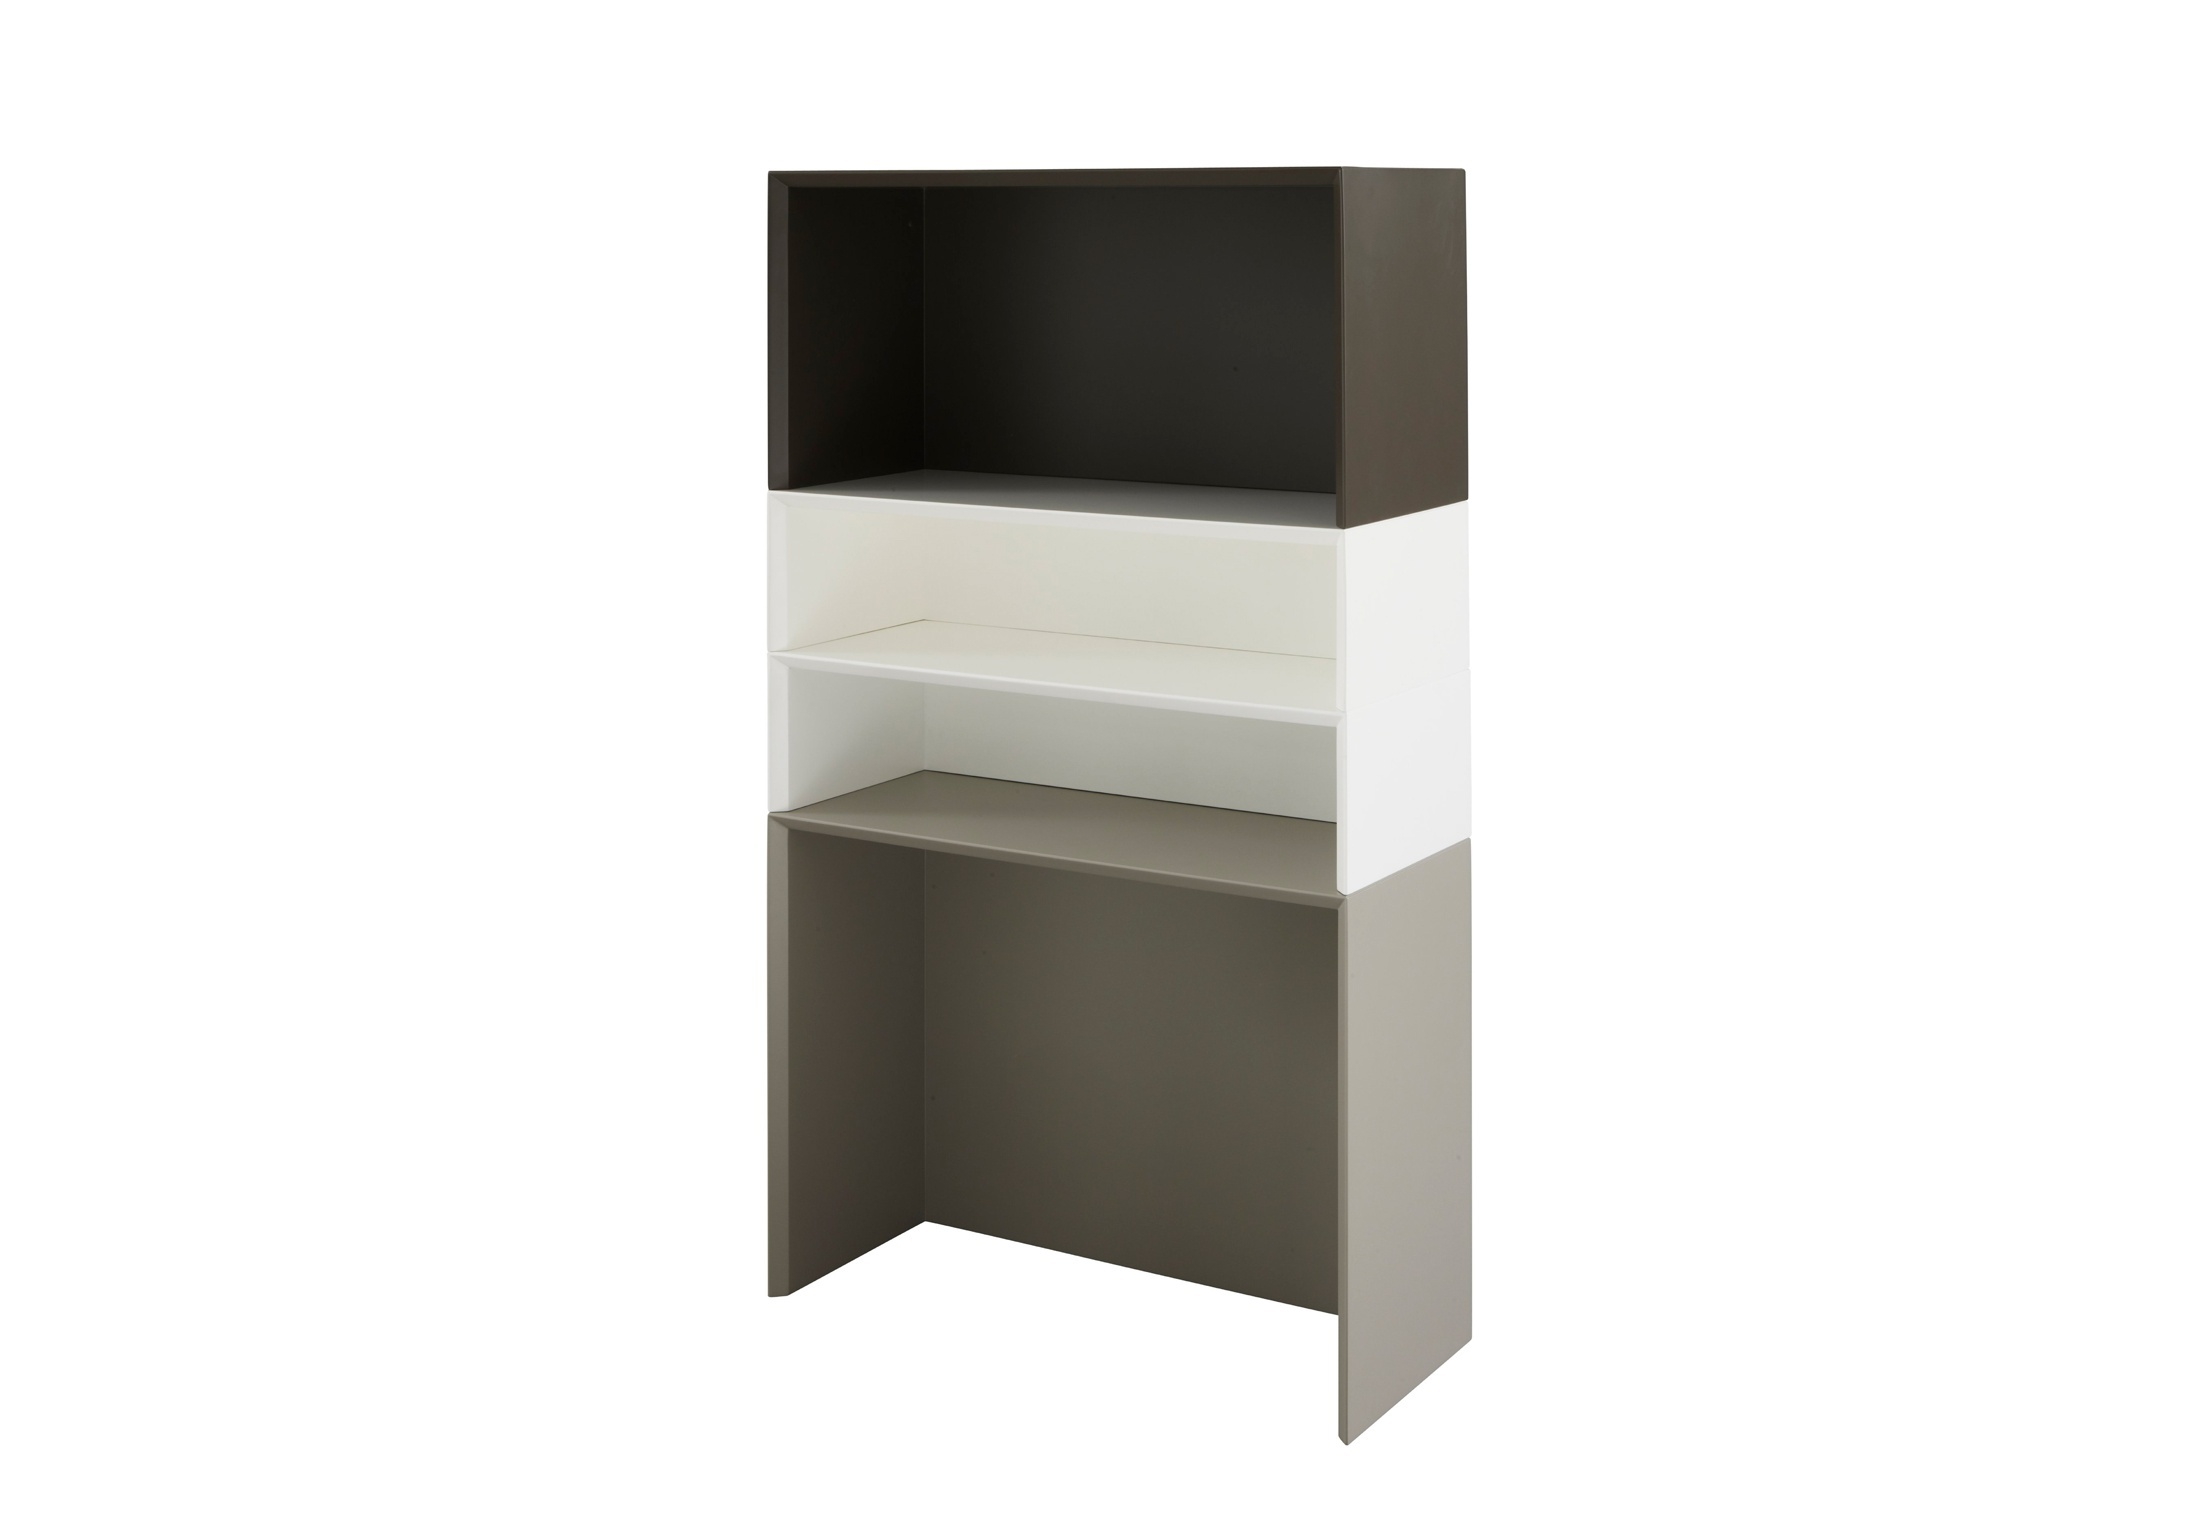 Modular Storage System Vertical Or Horizontal Tricolore Ligne  # Ligne Roset Meuble Tele